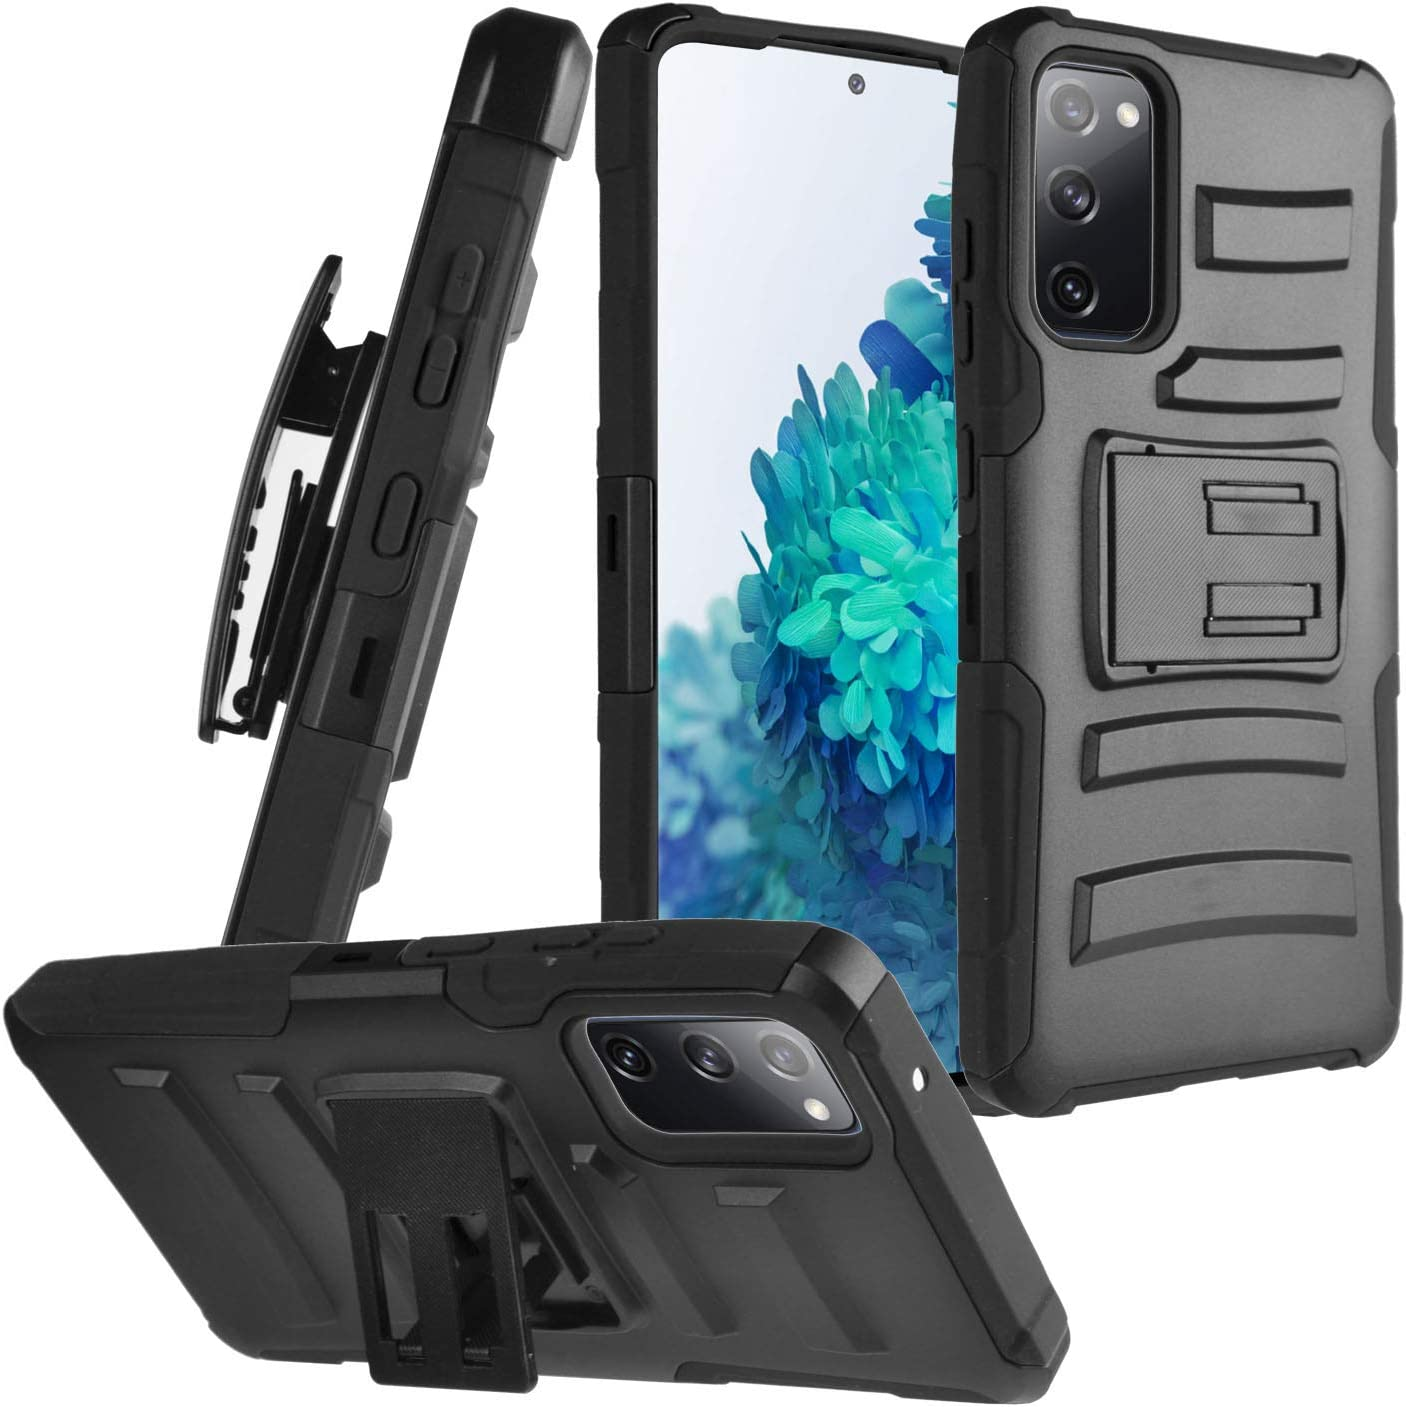 Black//Orange Aimoll-88 Galaxy S20 FE 5G Case with Screen Protector Heavy Duty Cover for Samsung S20 FE 5G Case Belt Clip Hybrid Shockproof Drop Protection Holster for Samsung Galaxy S20 FE 6.5 inch